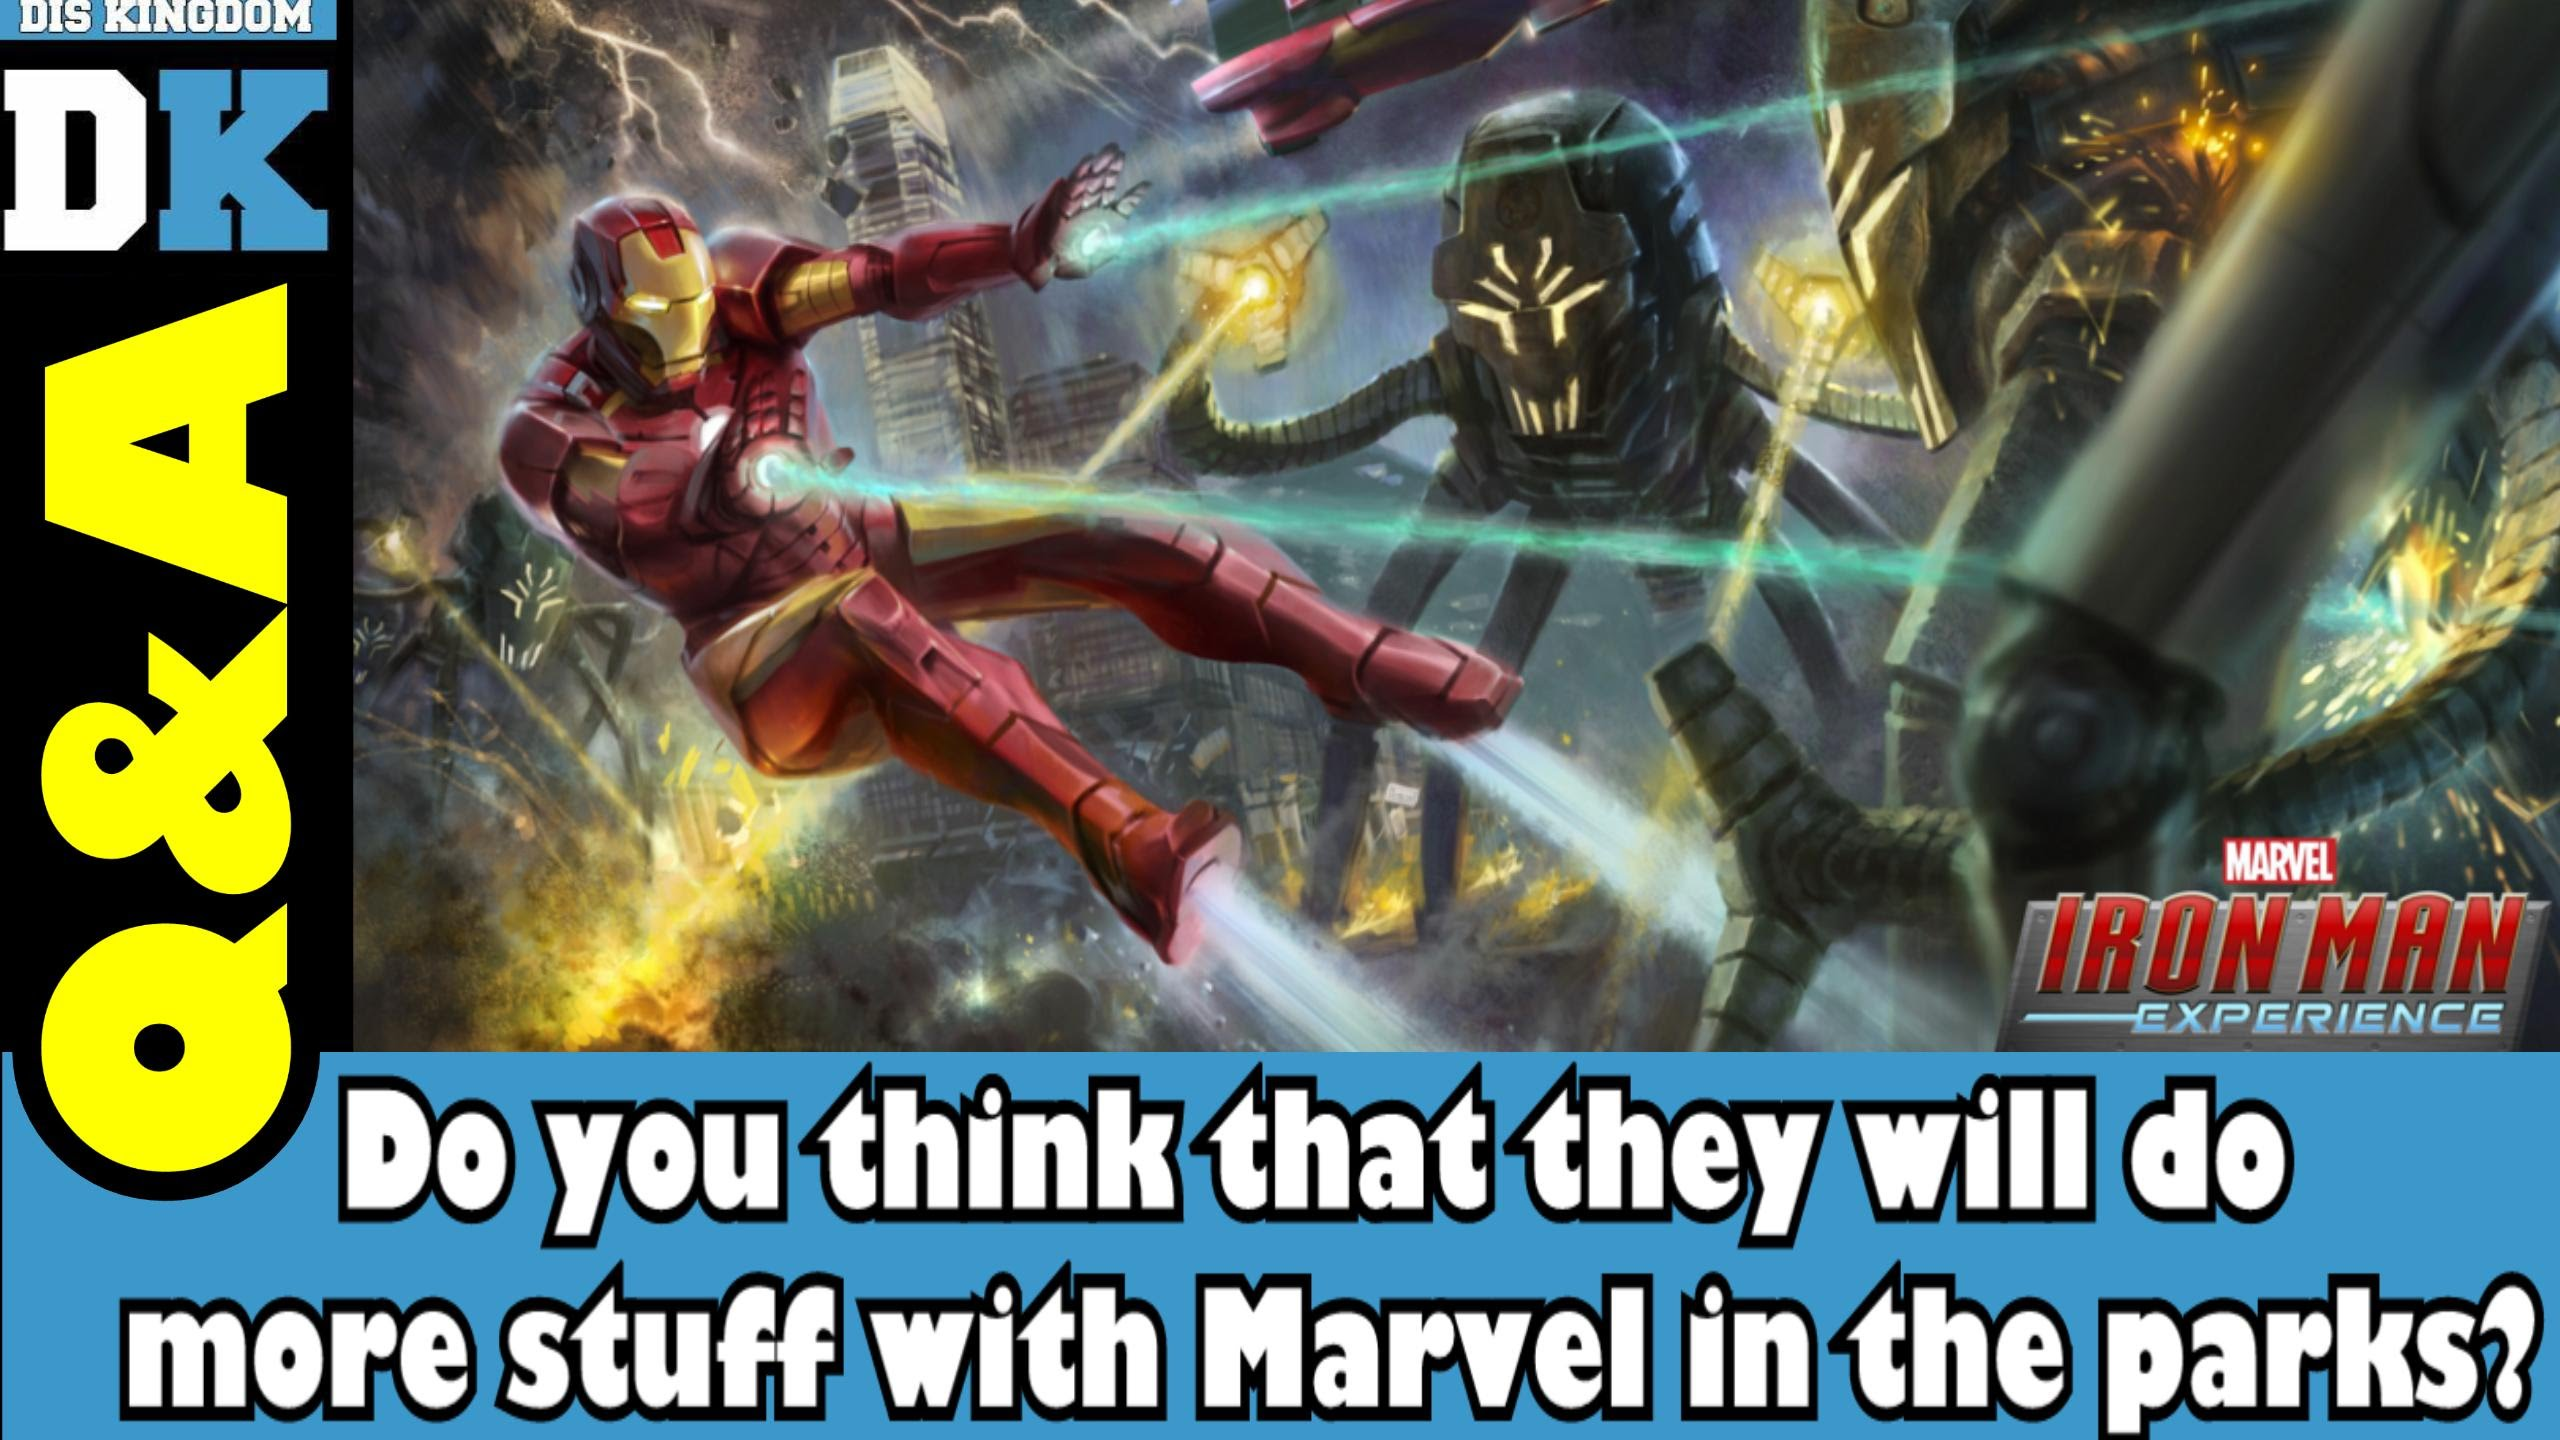 Do You Think More Marvel Will Be Added To The Disney Theme Parks?